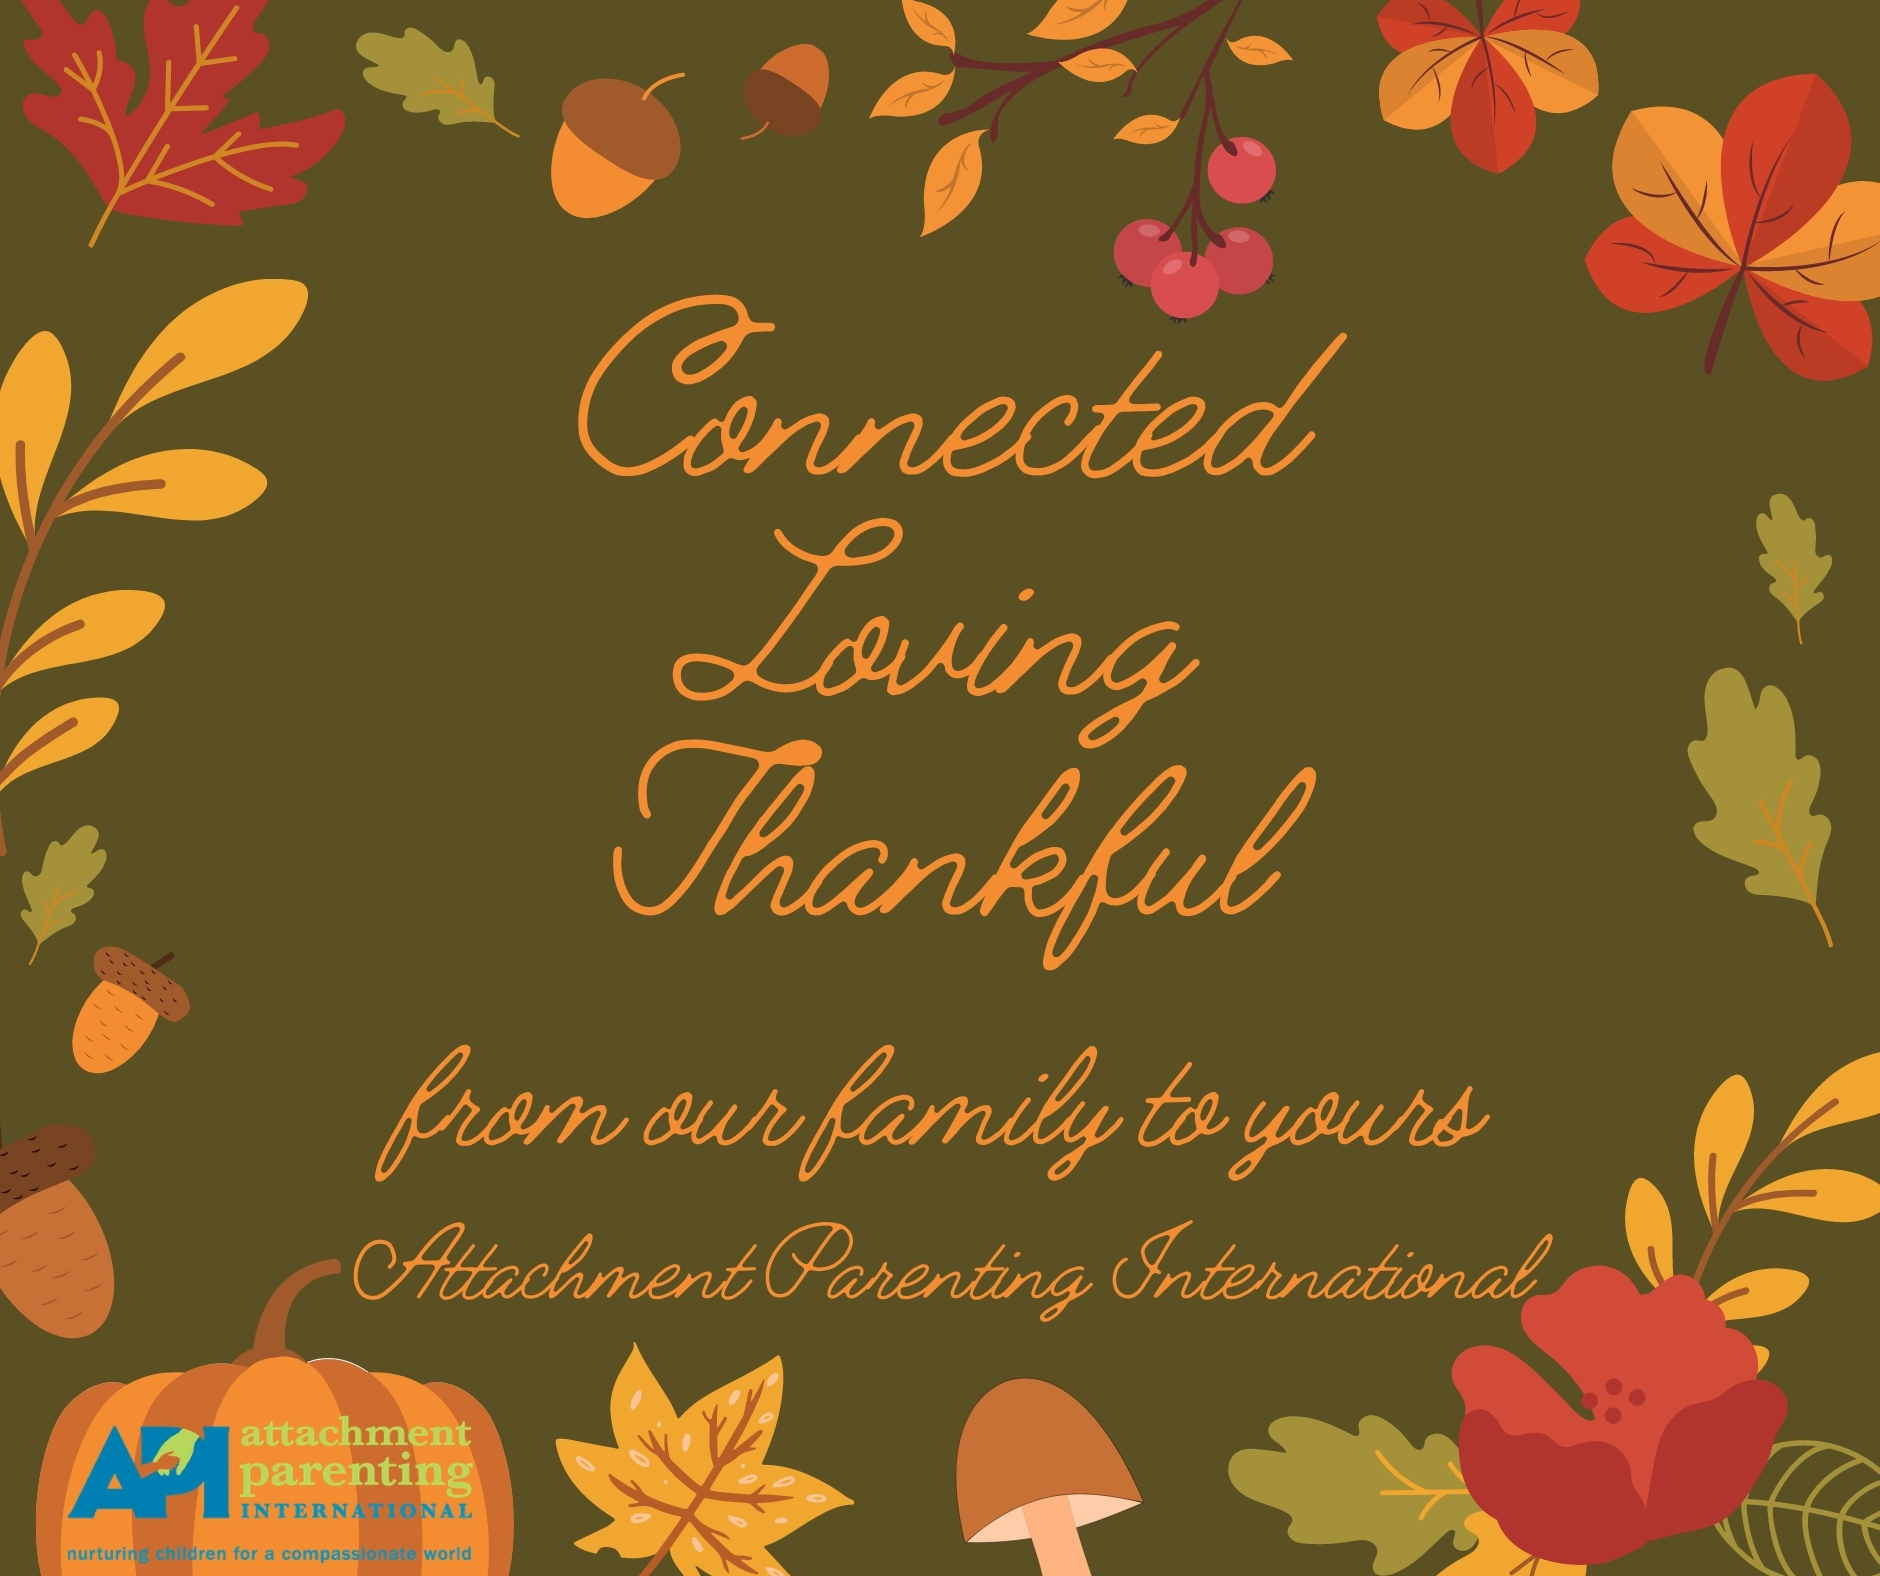 Happy Thanksgiving - Connected, Loving, Thankful